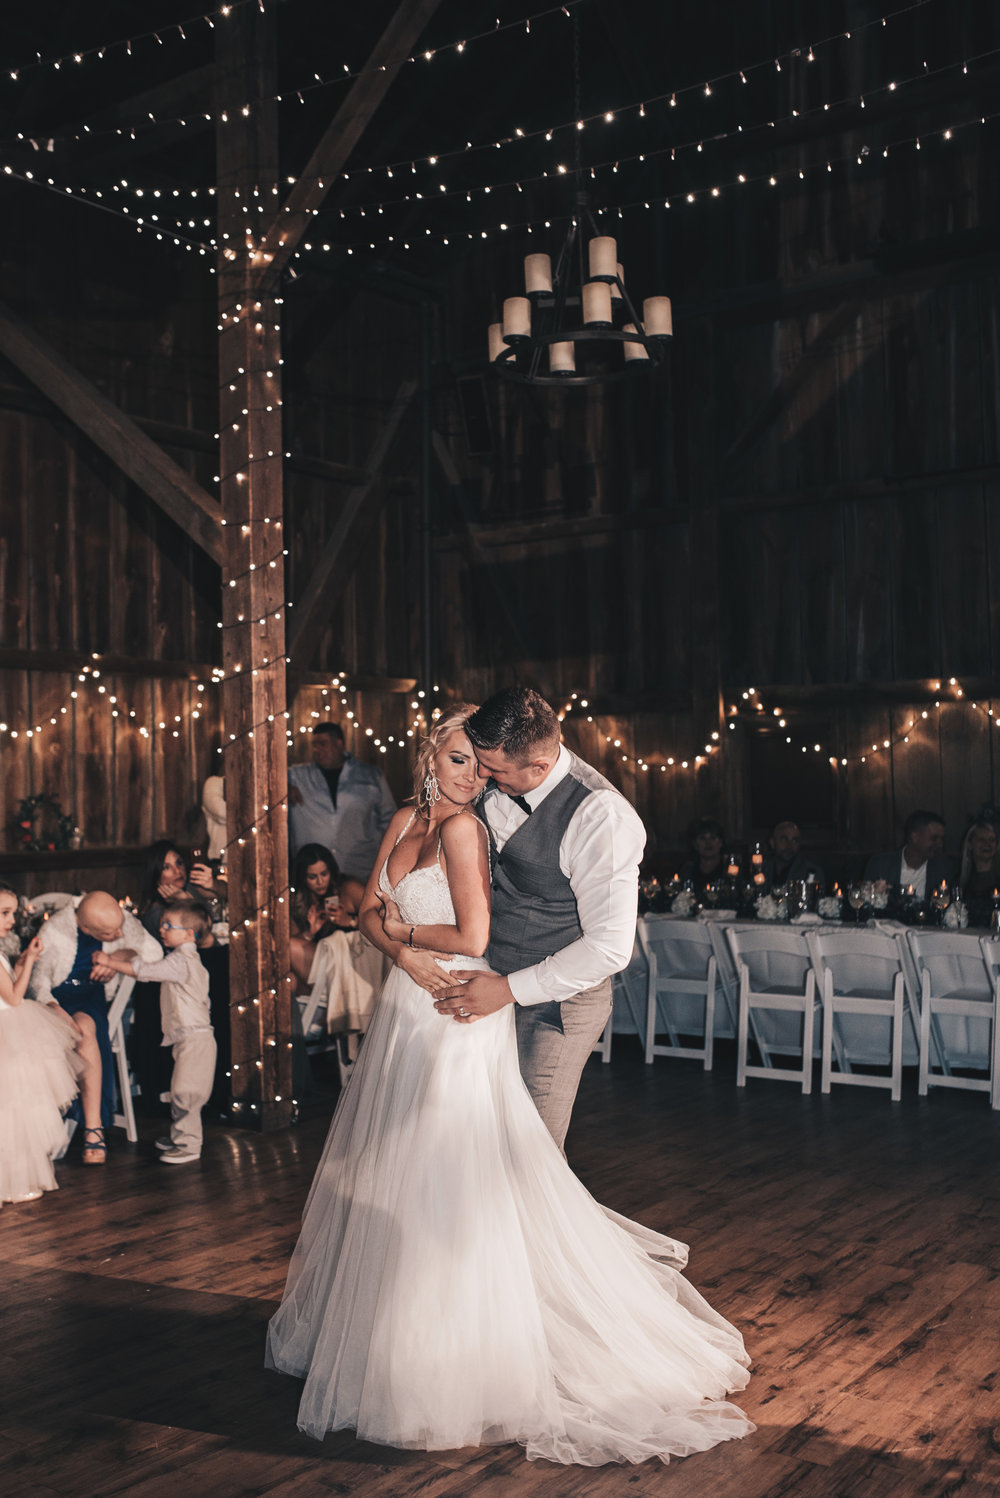 First Dance Photos, Hoosier Grove Barn, Wedding Photos